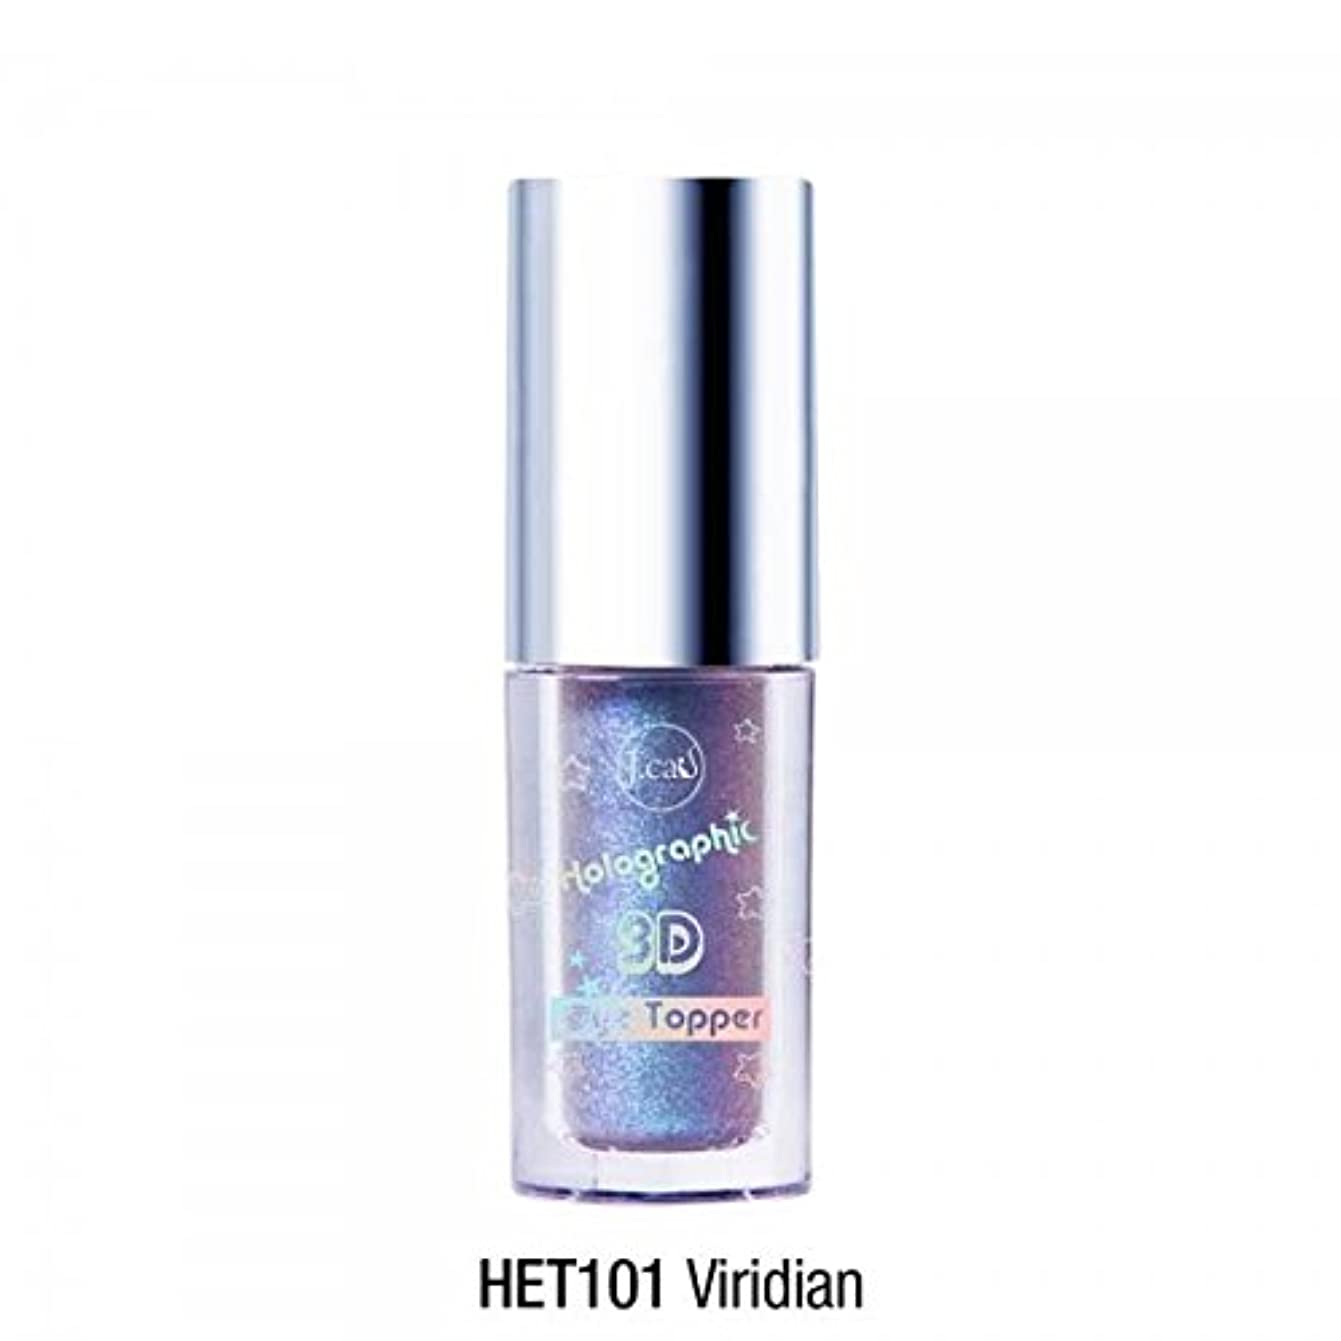 恥信じる記念碑的な(6 Pack) J. CAT BEAUTY Holographic 3d Eye Topper - Viridian (並行輸入品)